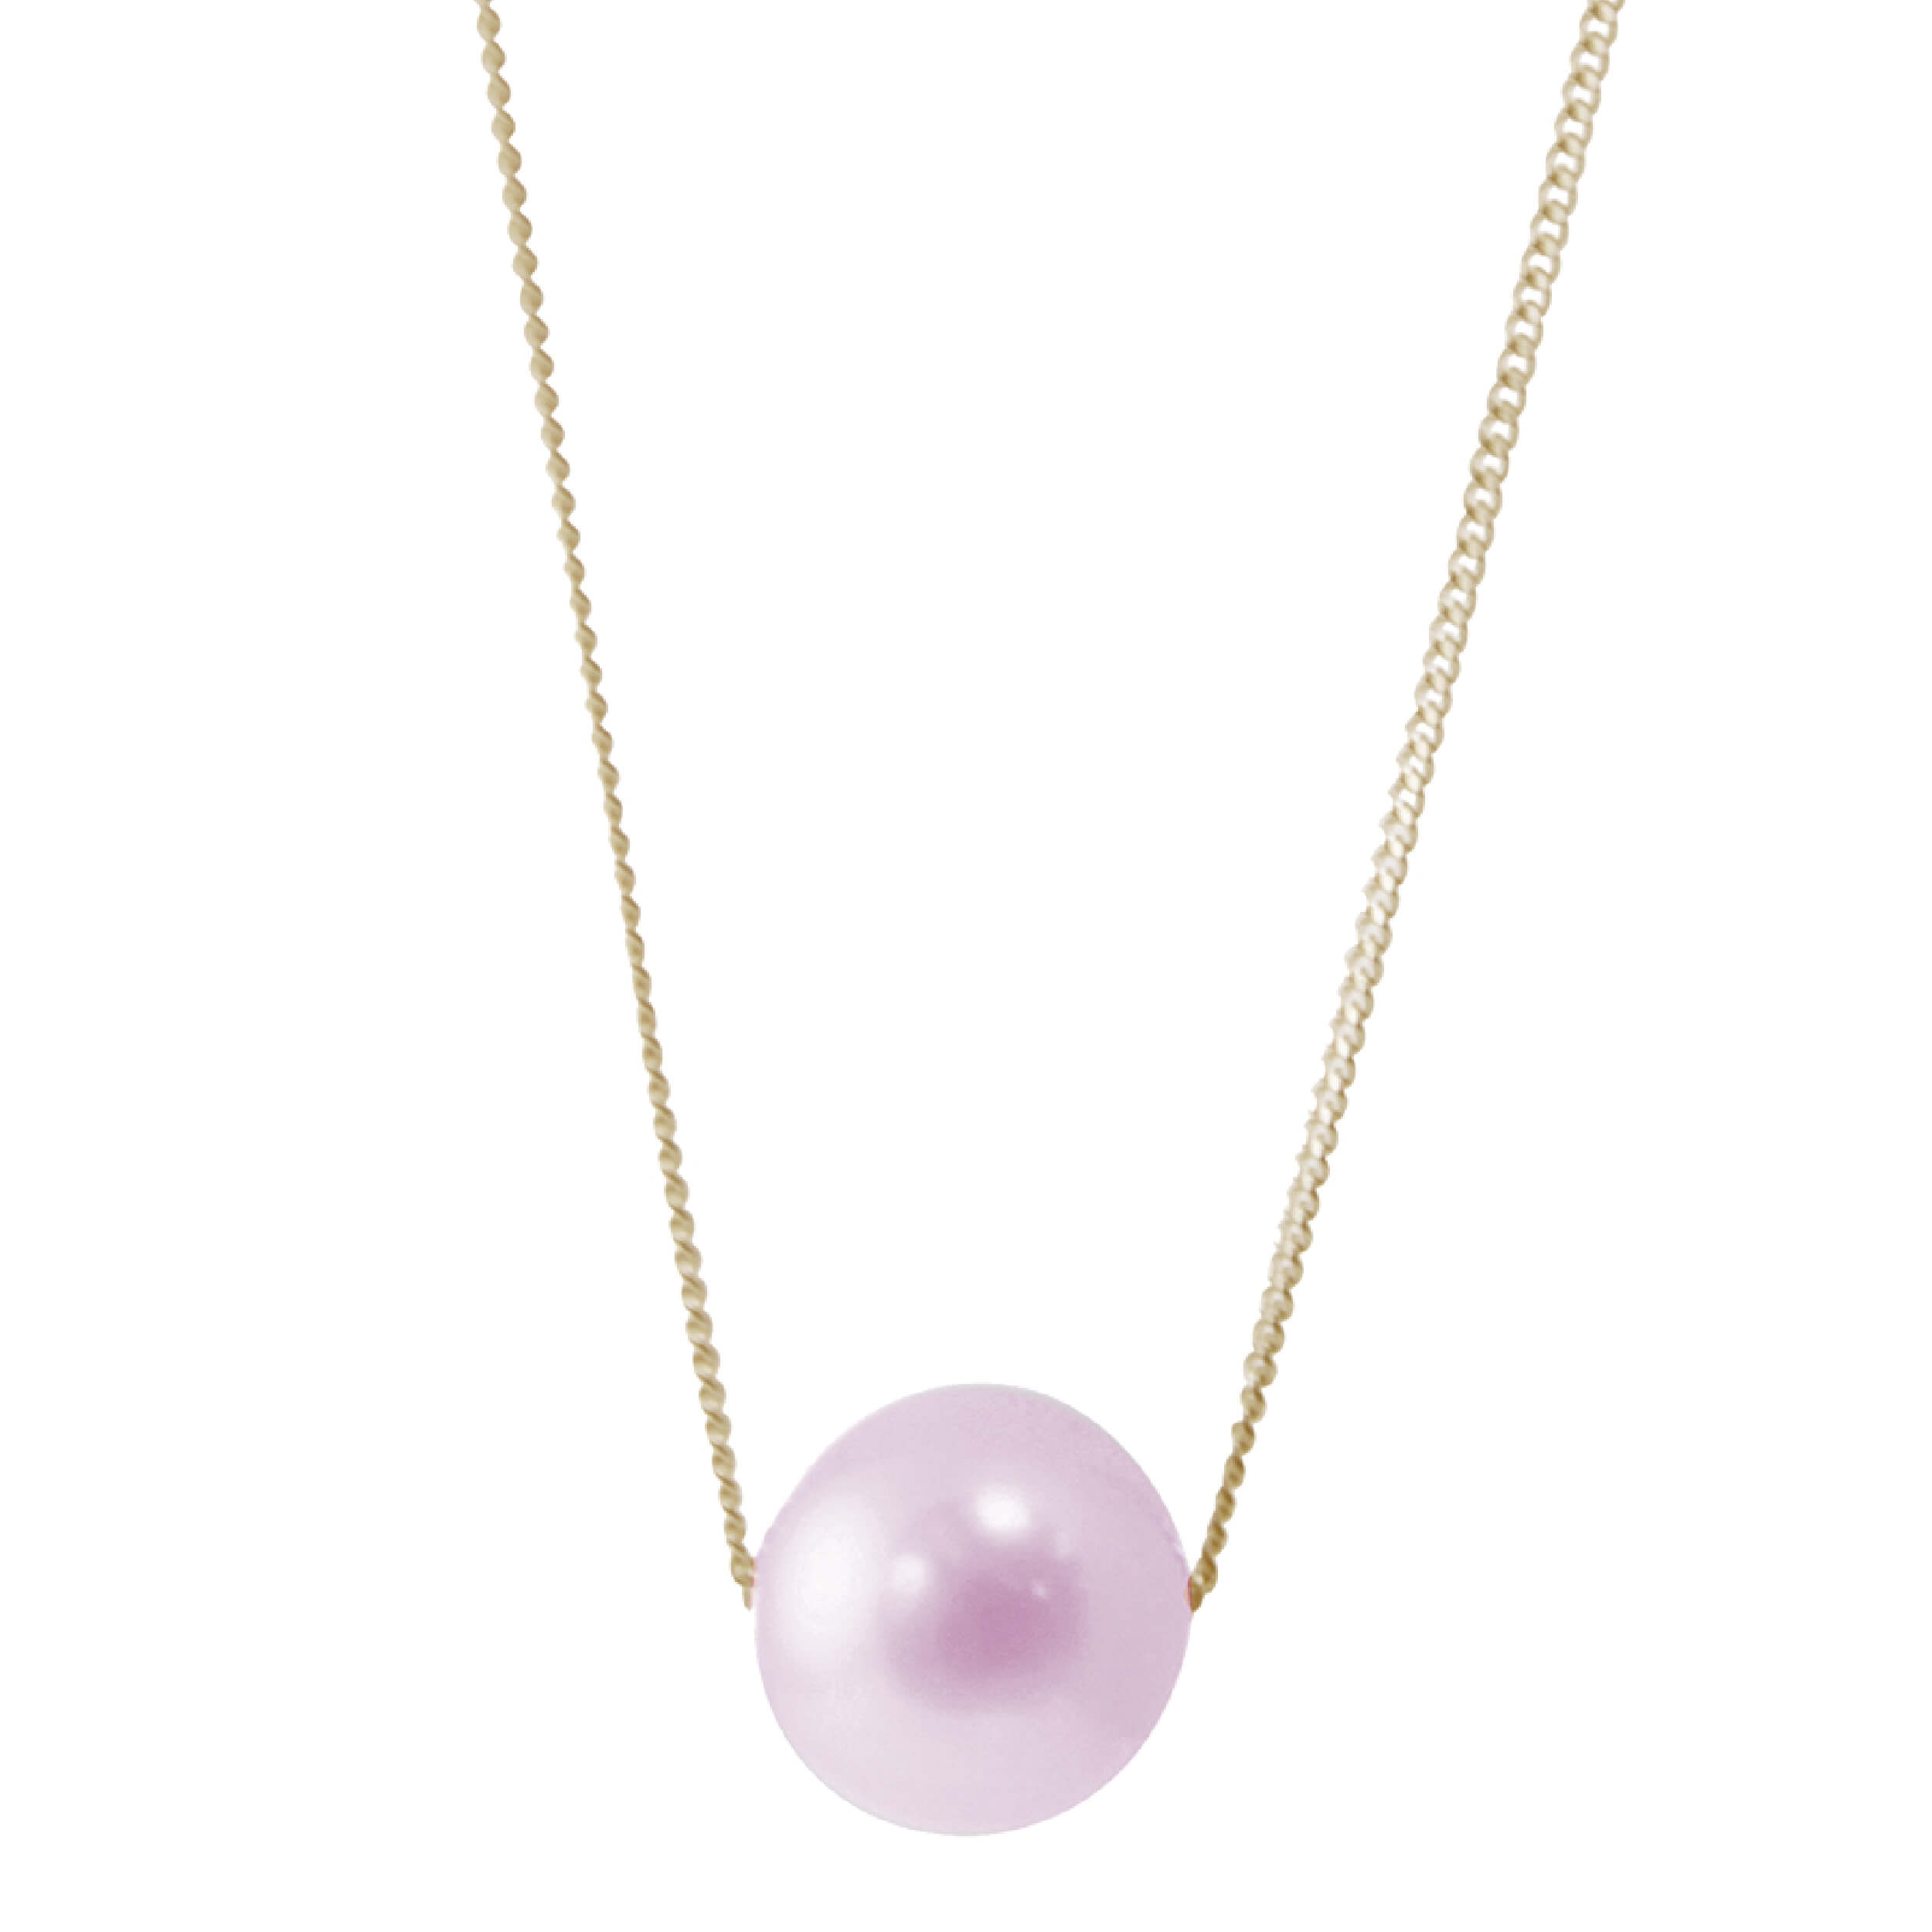 Pearl Necklace by Bijoux Jewels